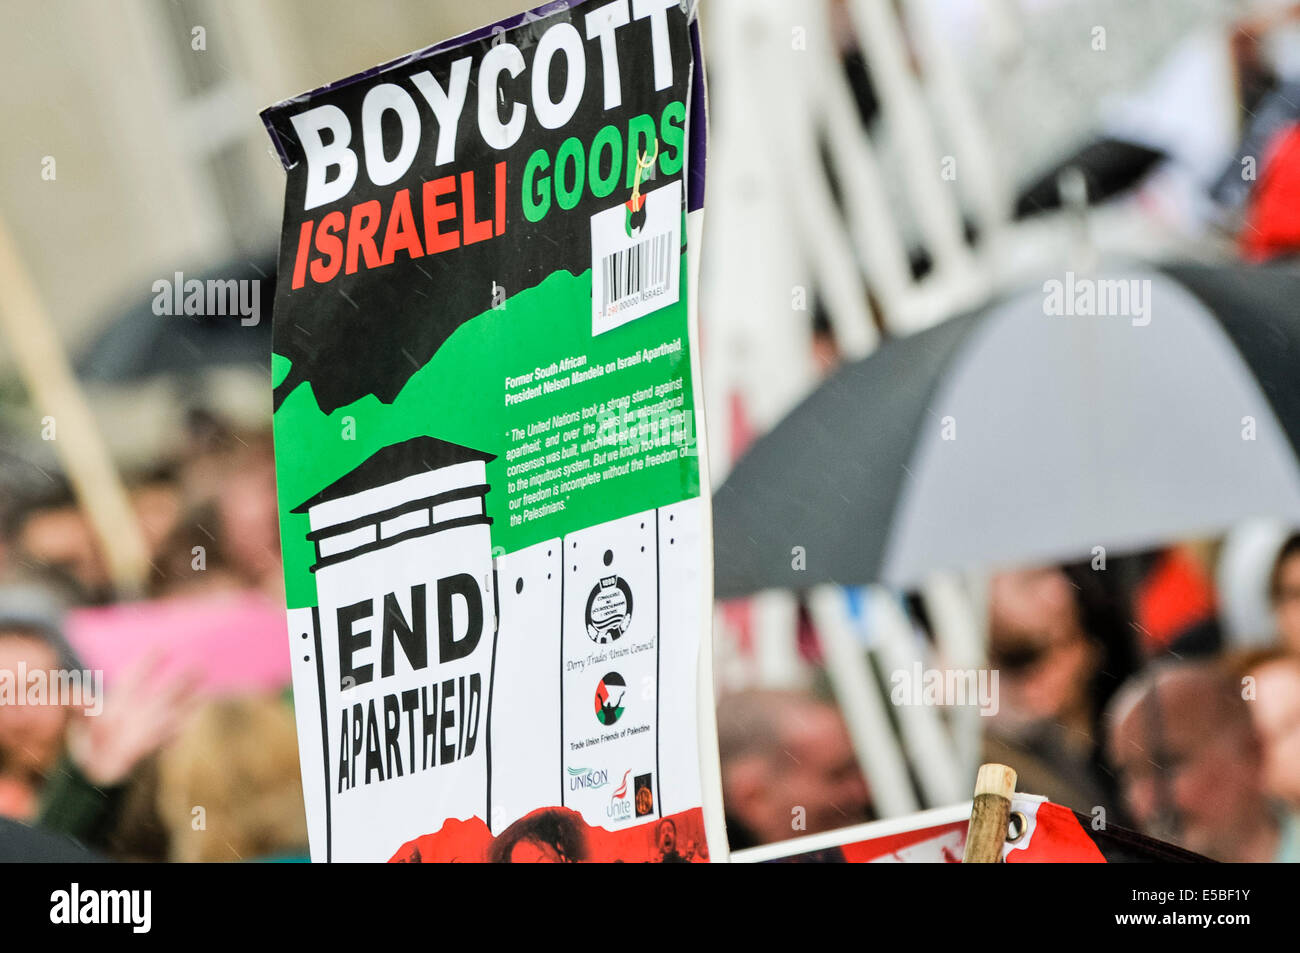 Belfast, Northern Ireland. 26 Jul 2014 - A protester holds up a poster saying 'Boycott Israeli goods.  End apartheid' - Stock Image